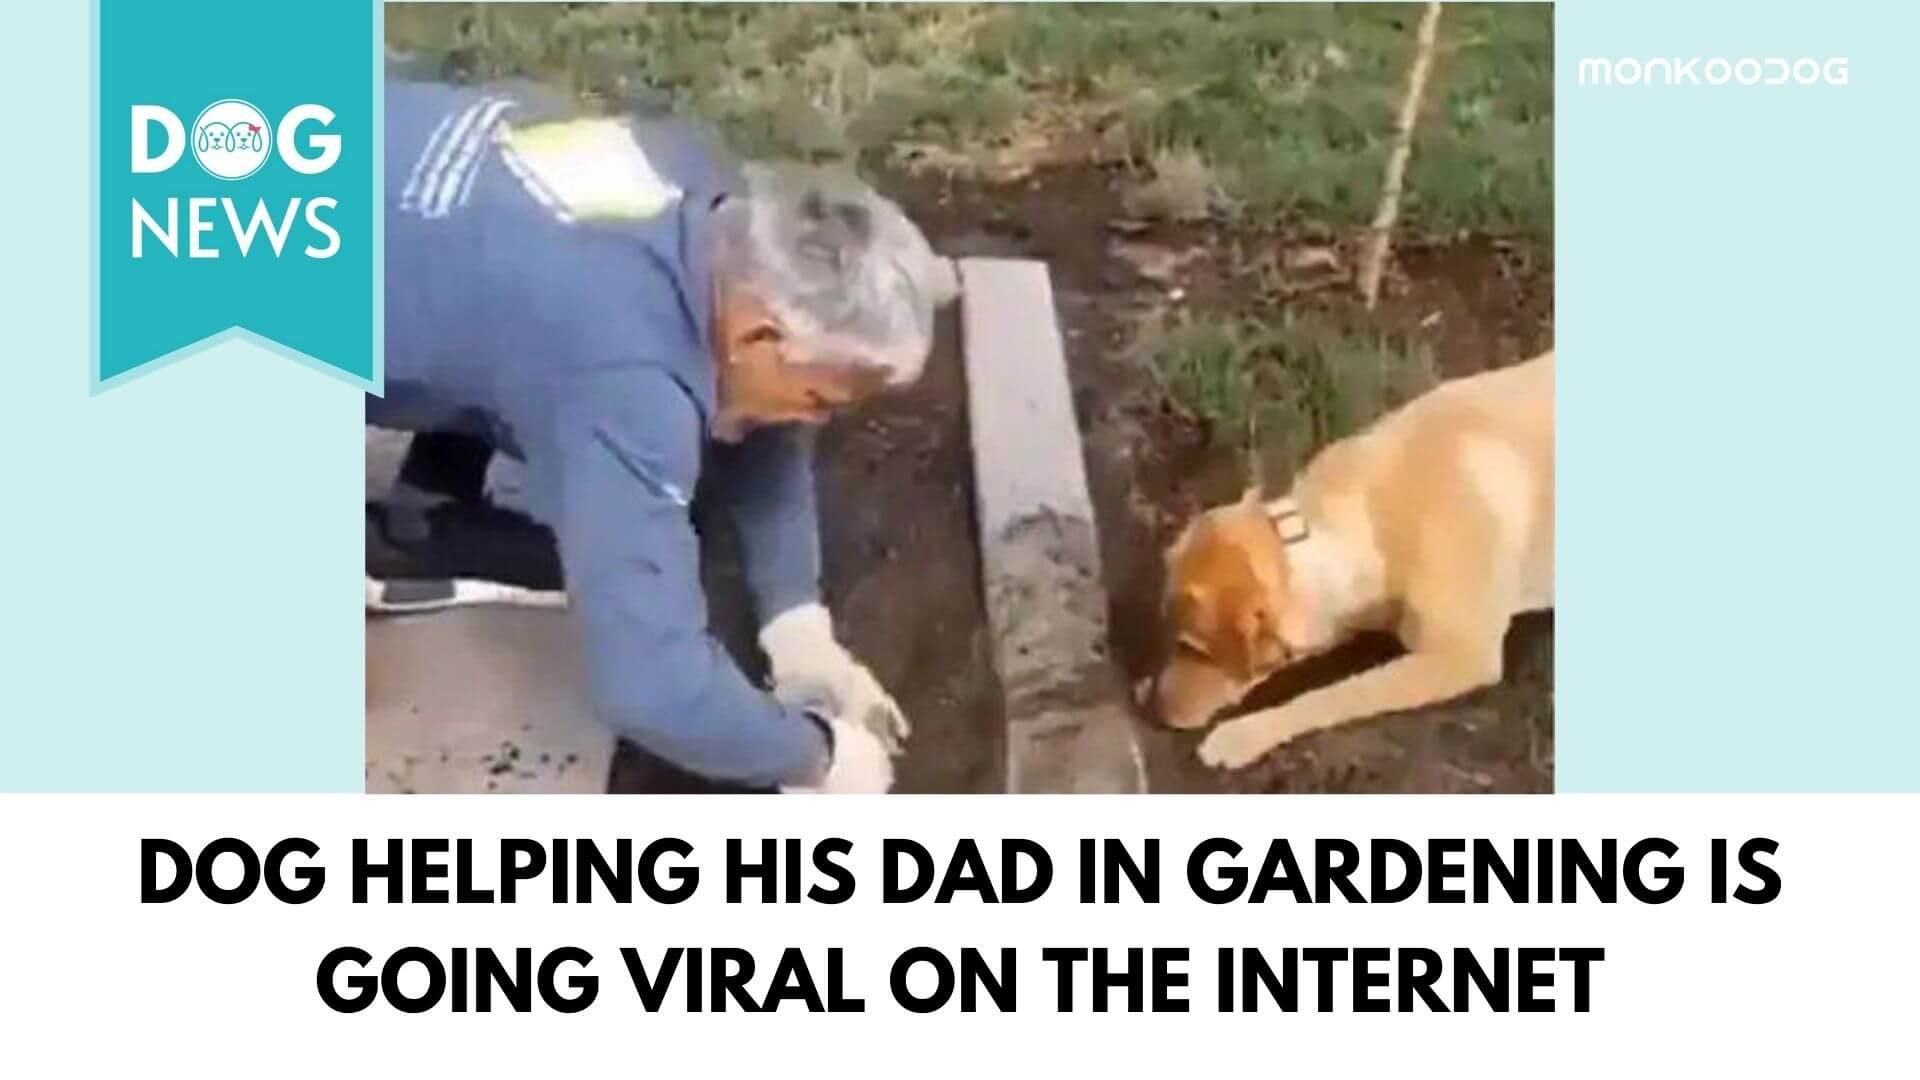 A Viral Video of a Pet Dog Helping his Human Dad in Gardening is a Trending dog news on the Internet.